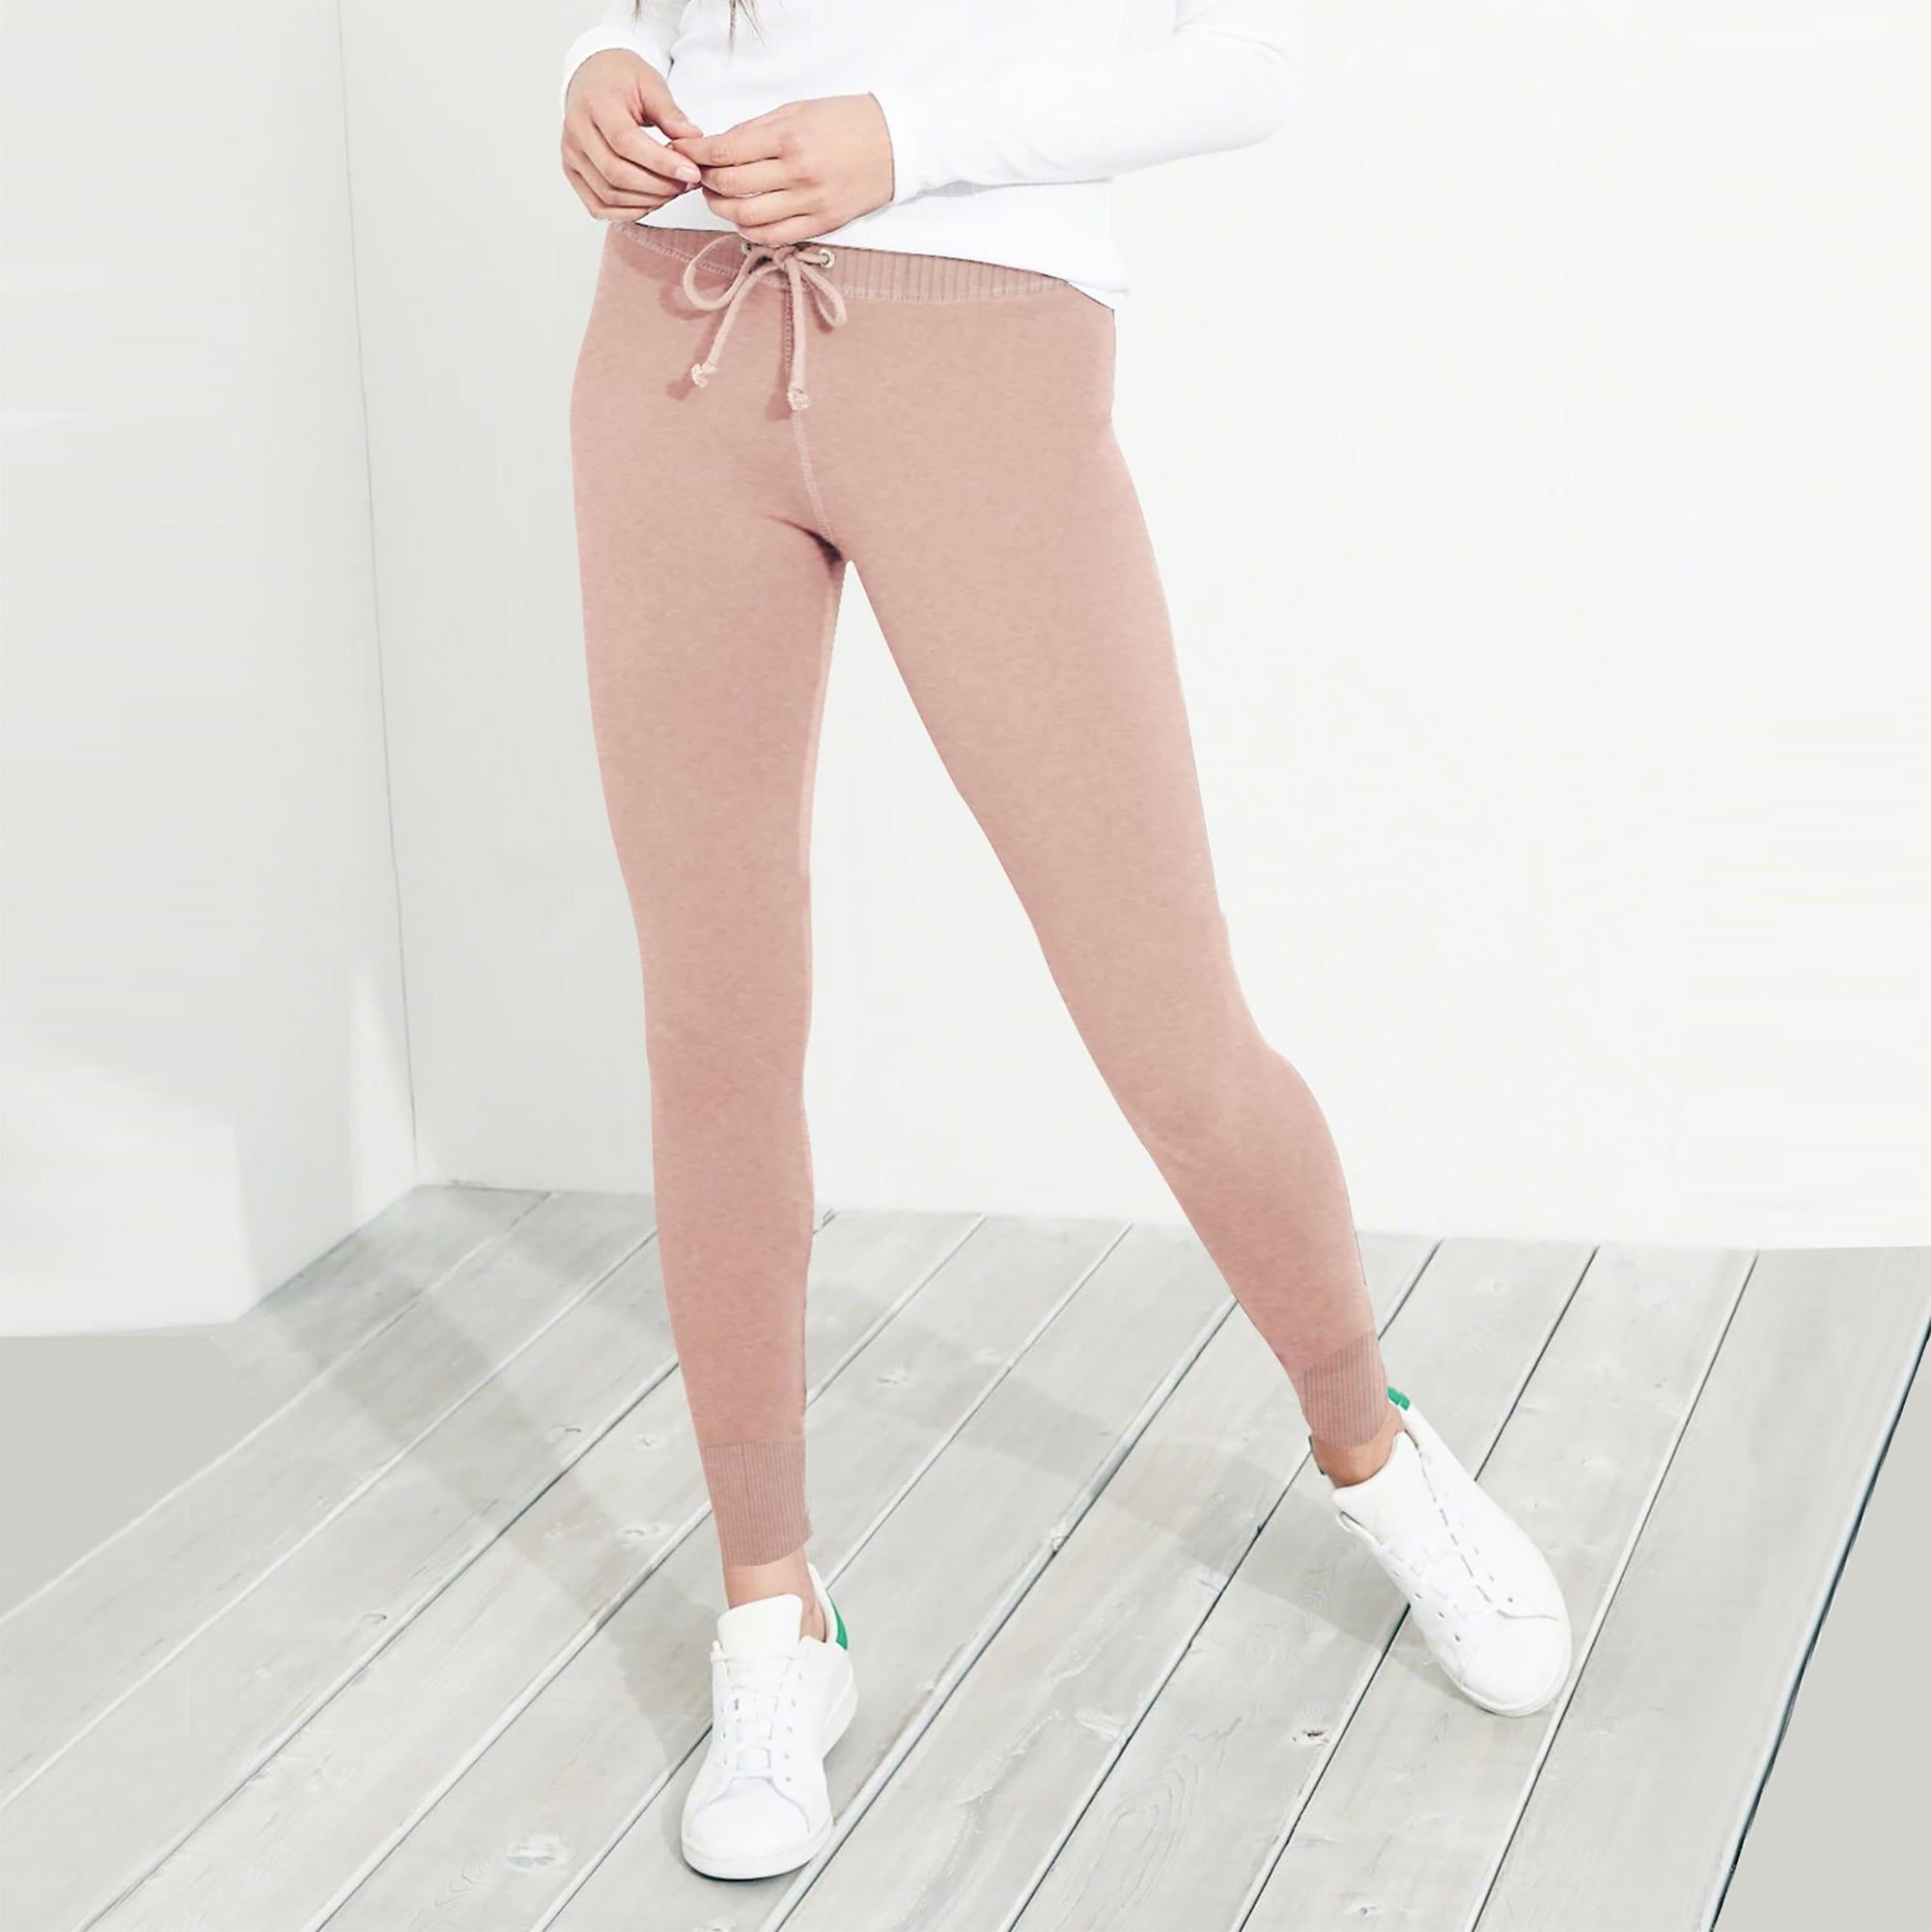 NEXT Single Slim Fit Trouser For Girls-Skin-SP924